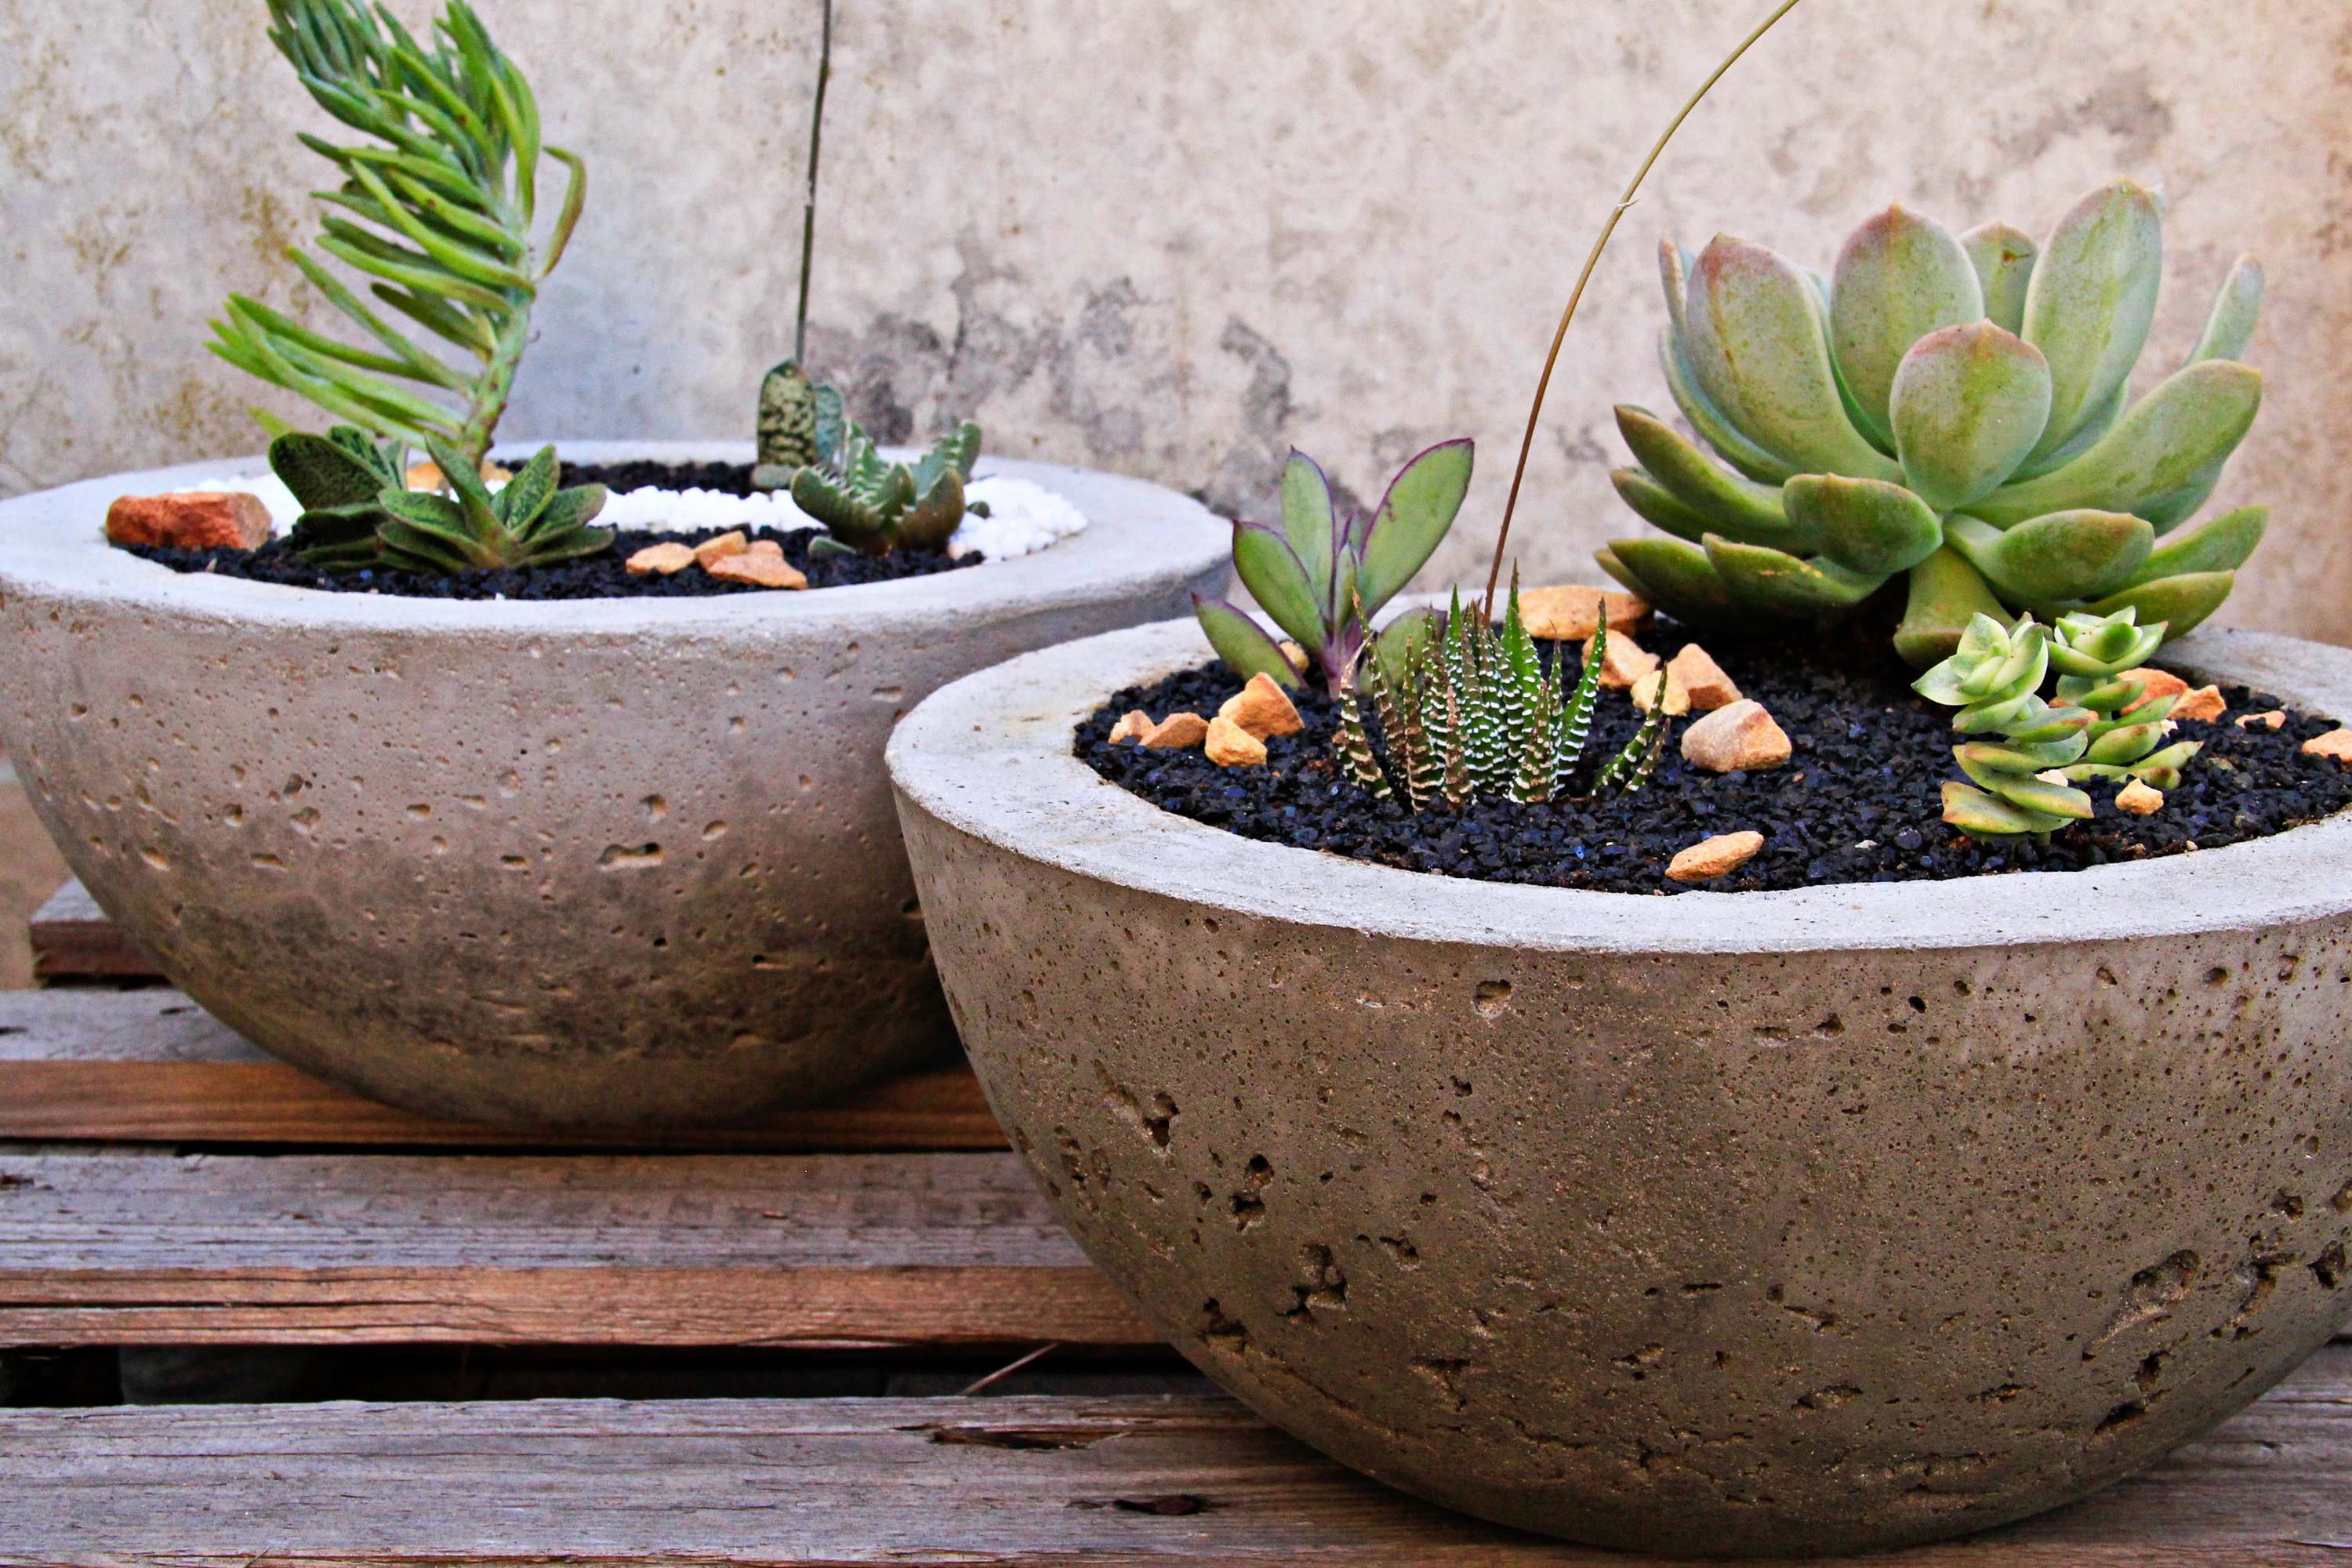 DIY Cement Crafts